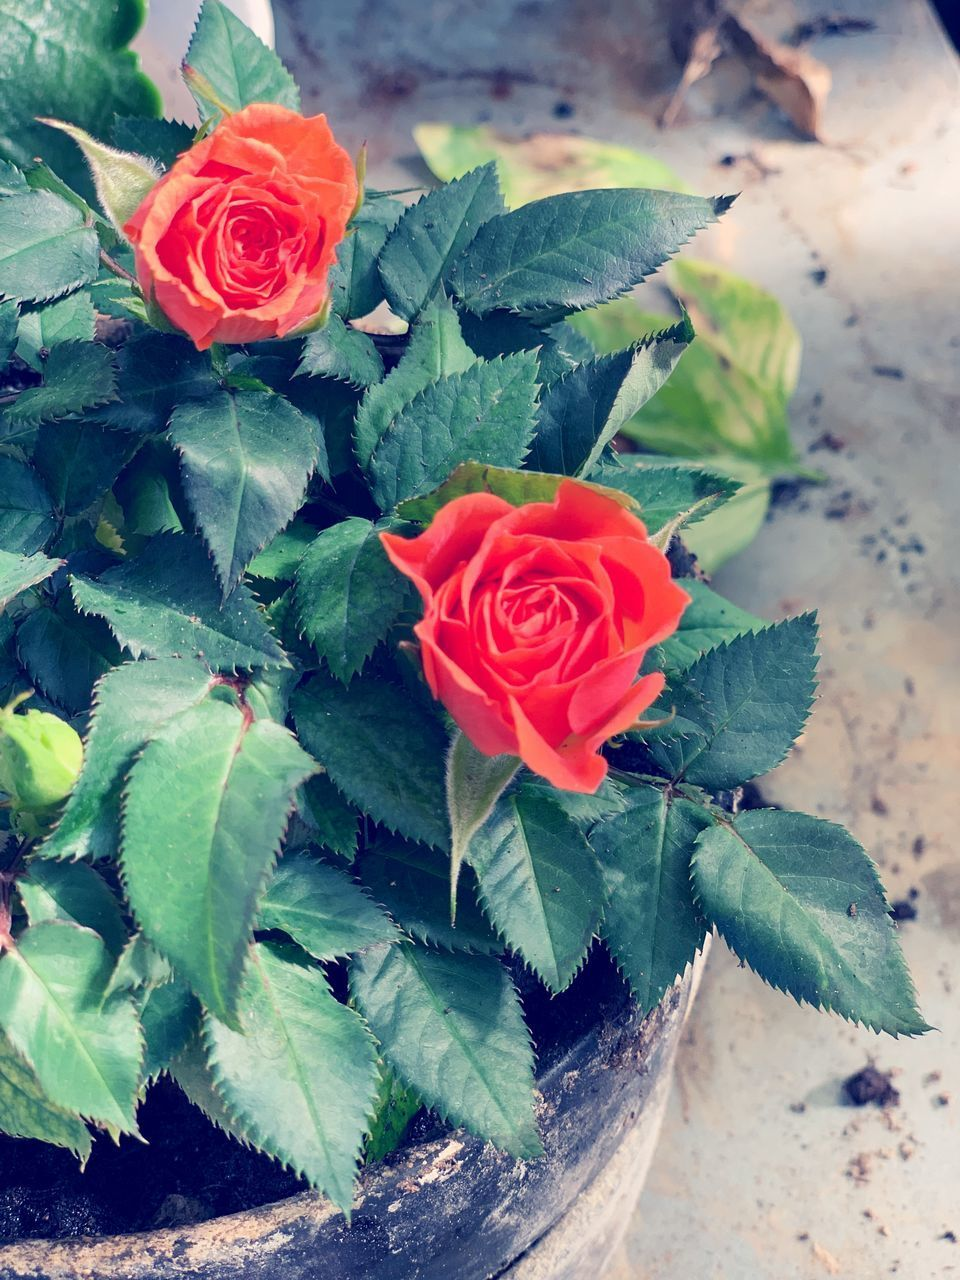 flower, flowering plant, beauty in nature, rose, leaf, plant, plant part, petal, flower head, freshness, inflorescence, rose - flower, vulnerability, close-up, fragility, nature, red, high angle view, no people, green color, outdoors, flower arrangement, bouquet